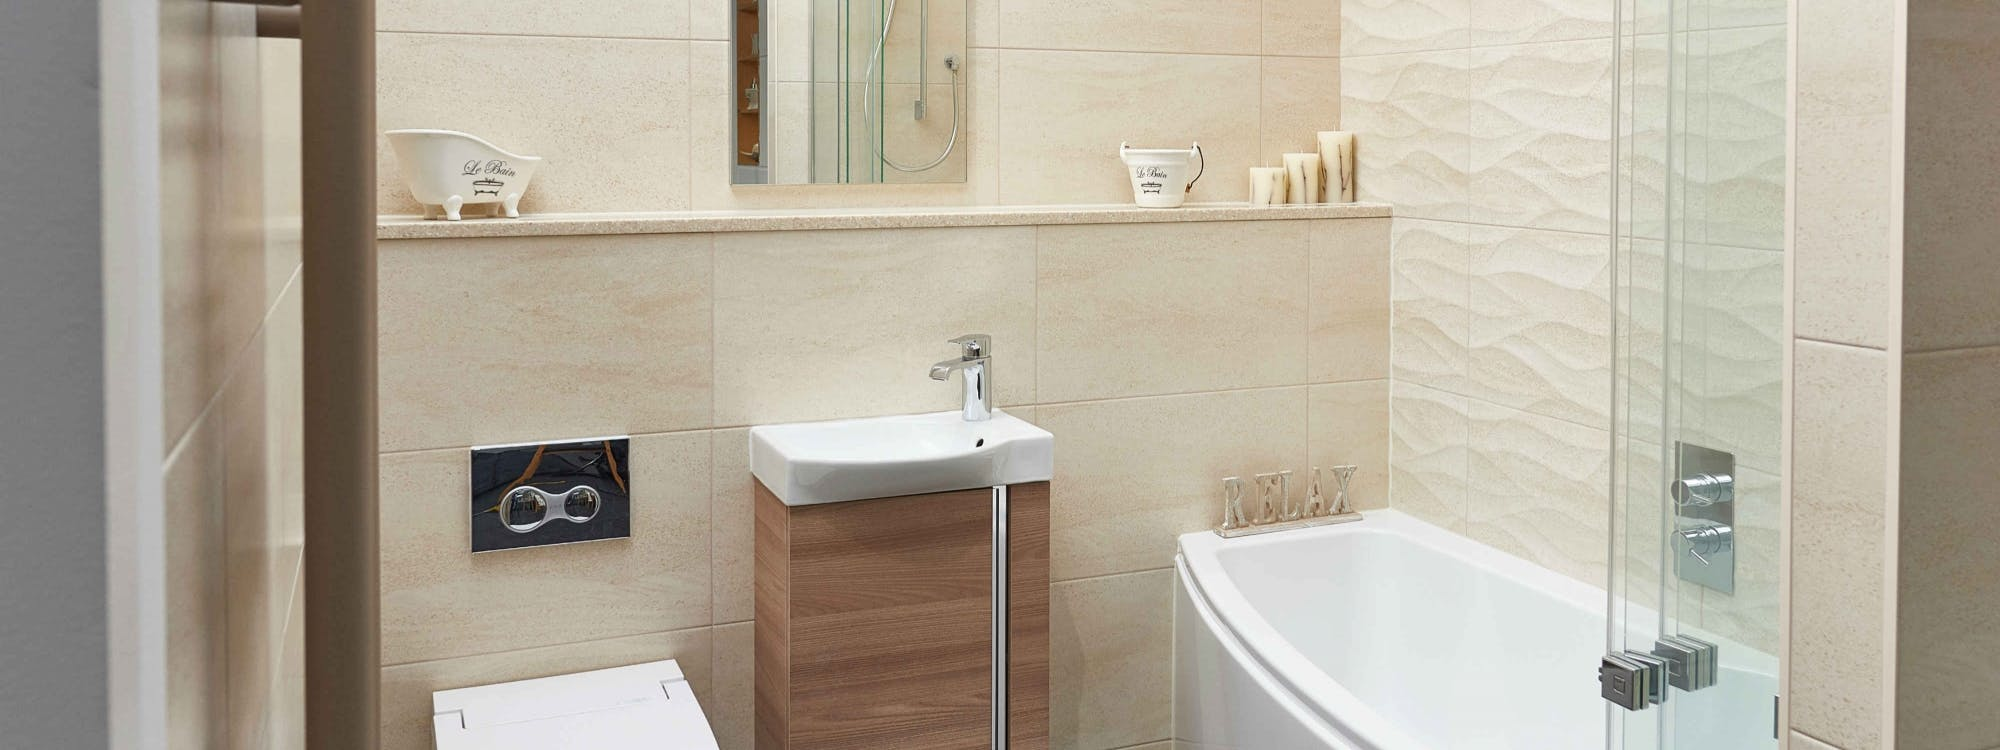 Our Leeds Bathroom Showroom features traditional, modern and luxury fixtures and fittings.